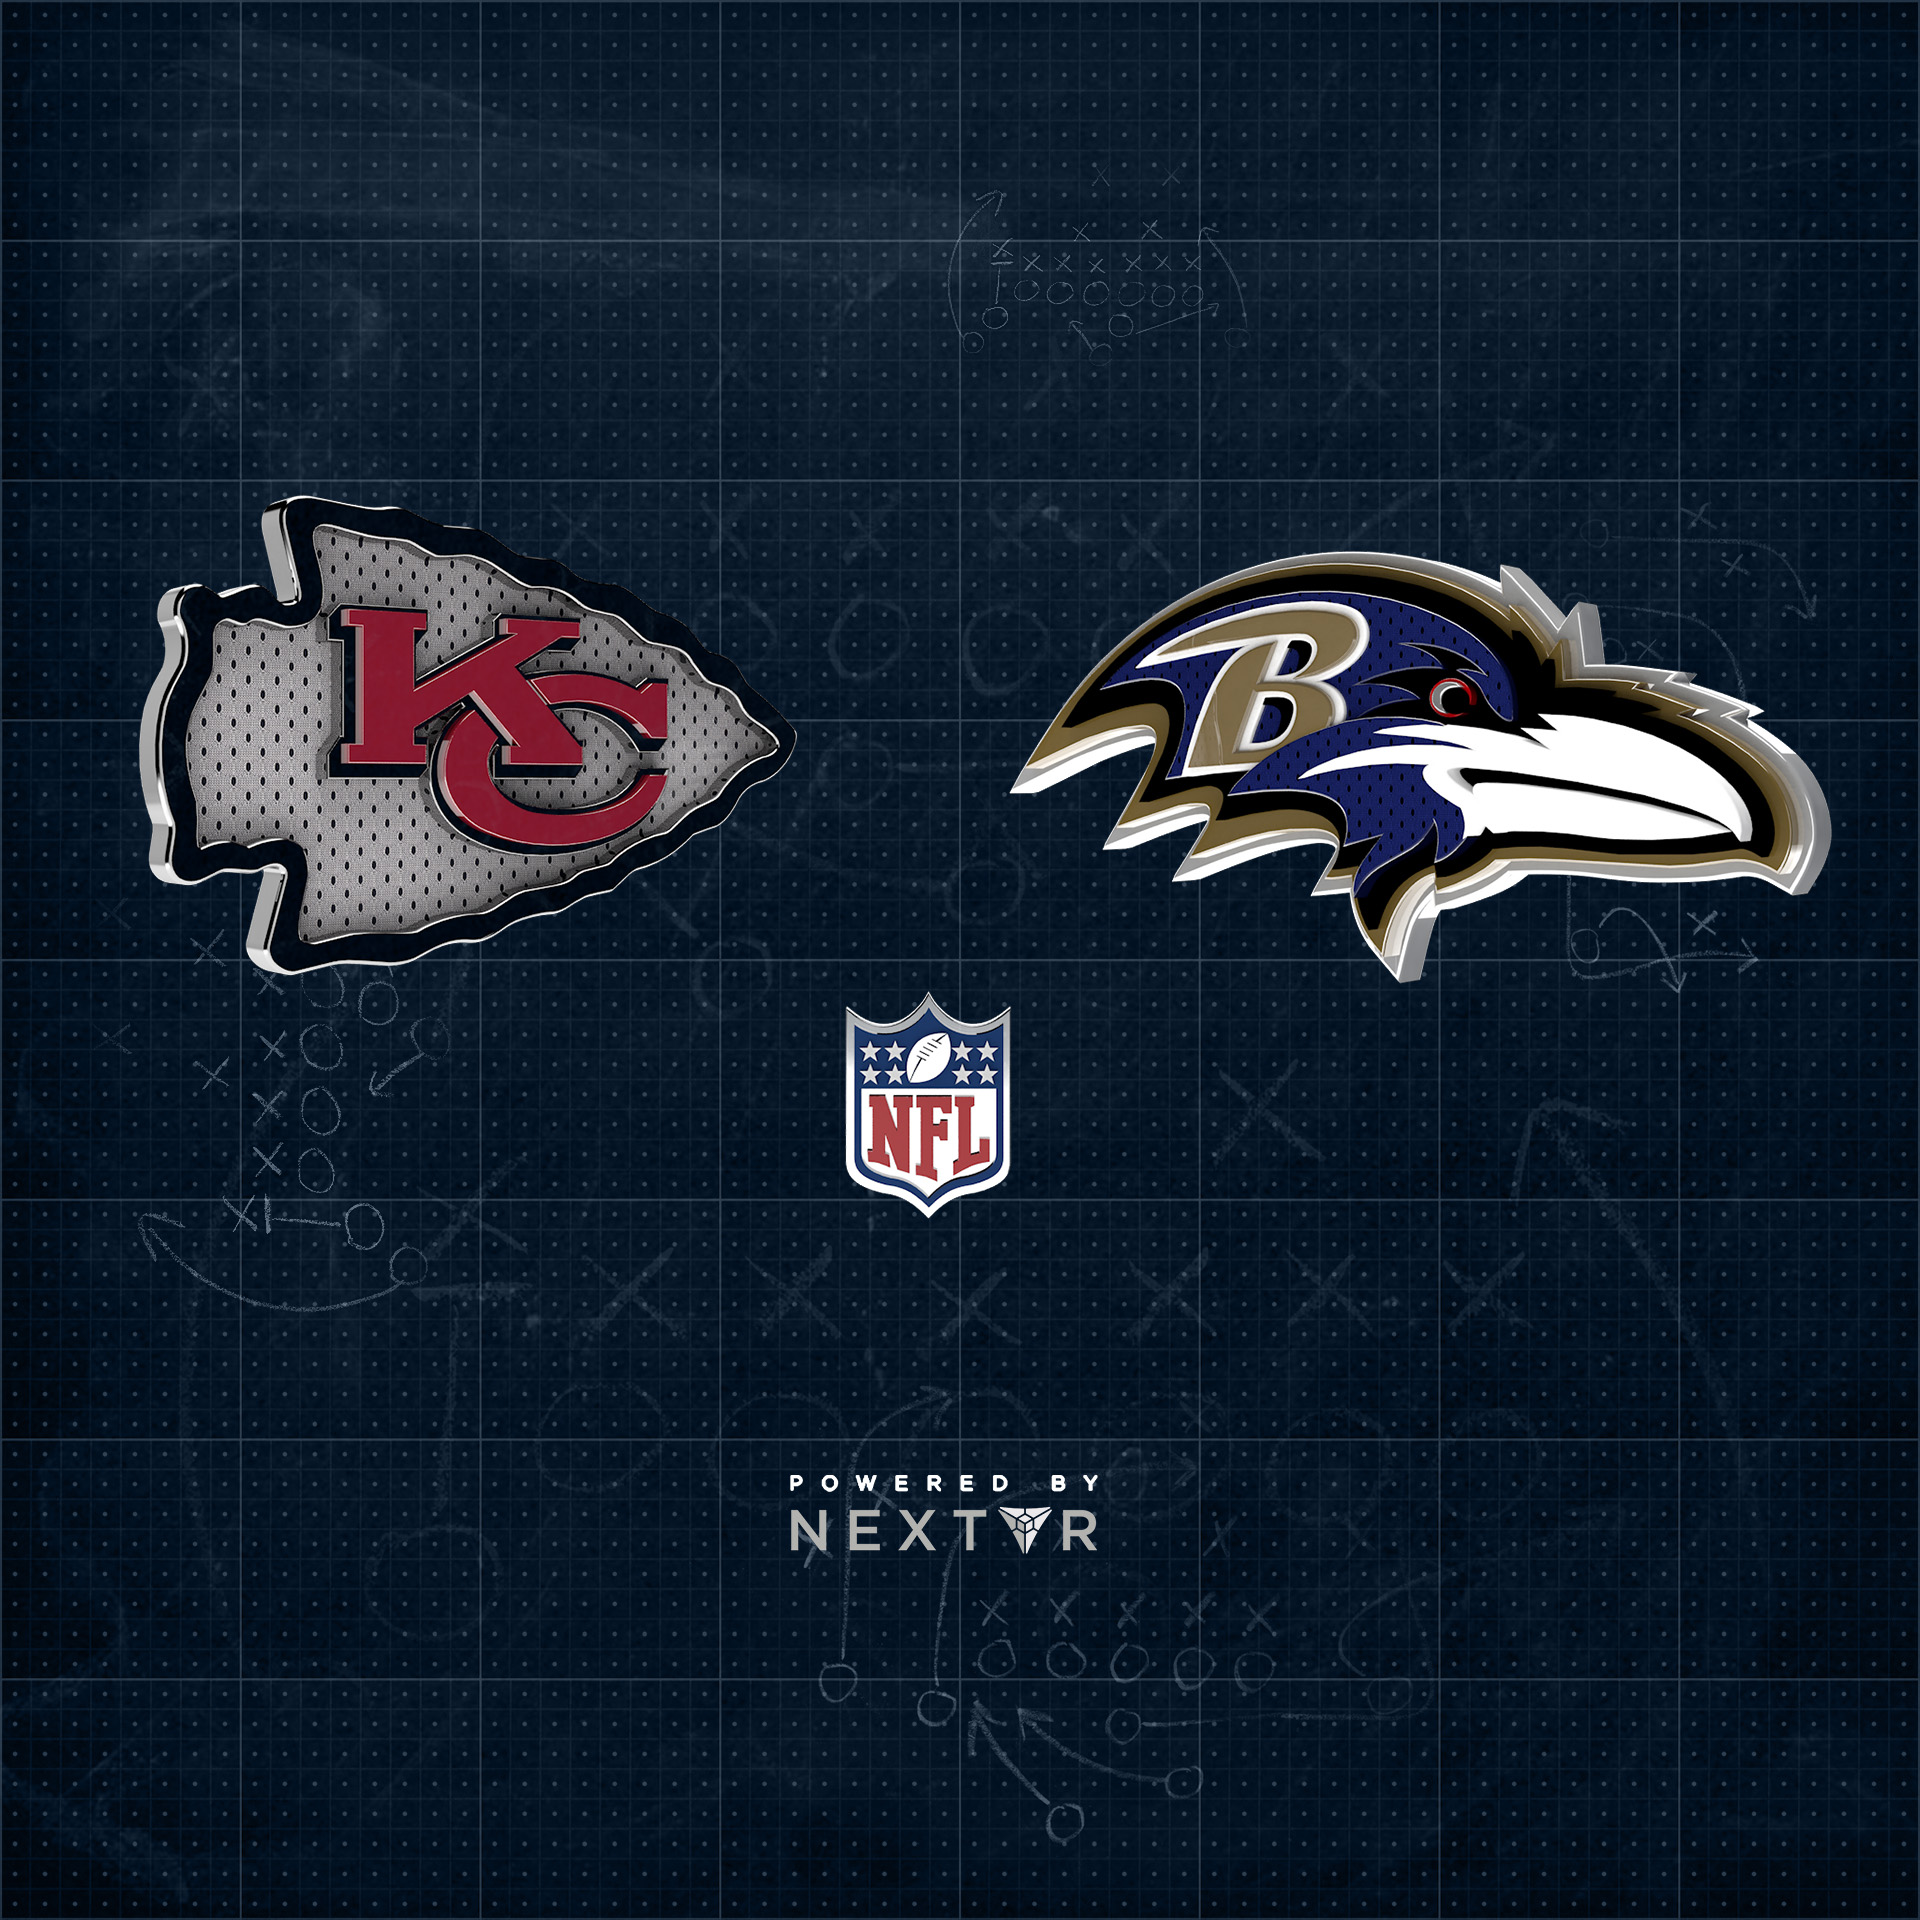 NFL_ChiefsVRavens_BackplaceMockup